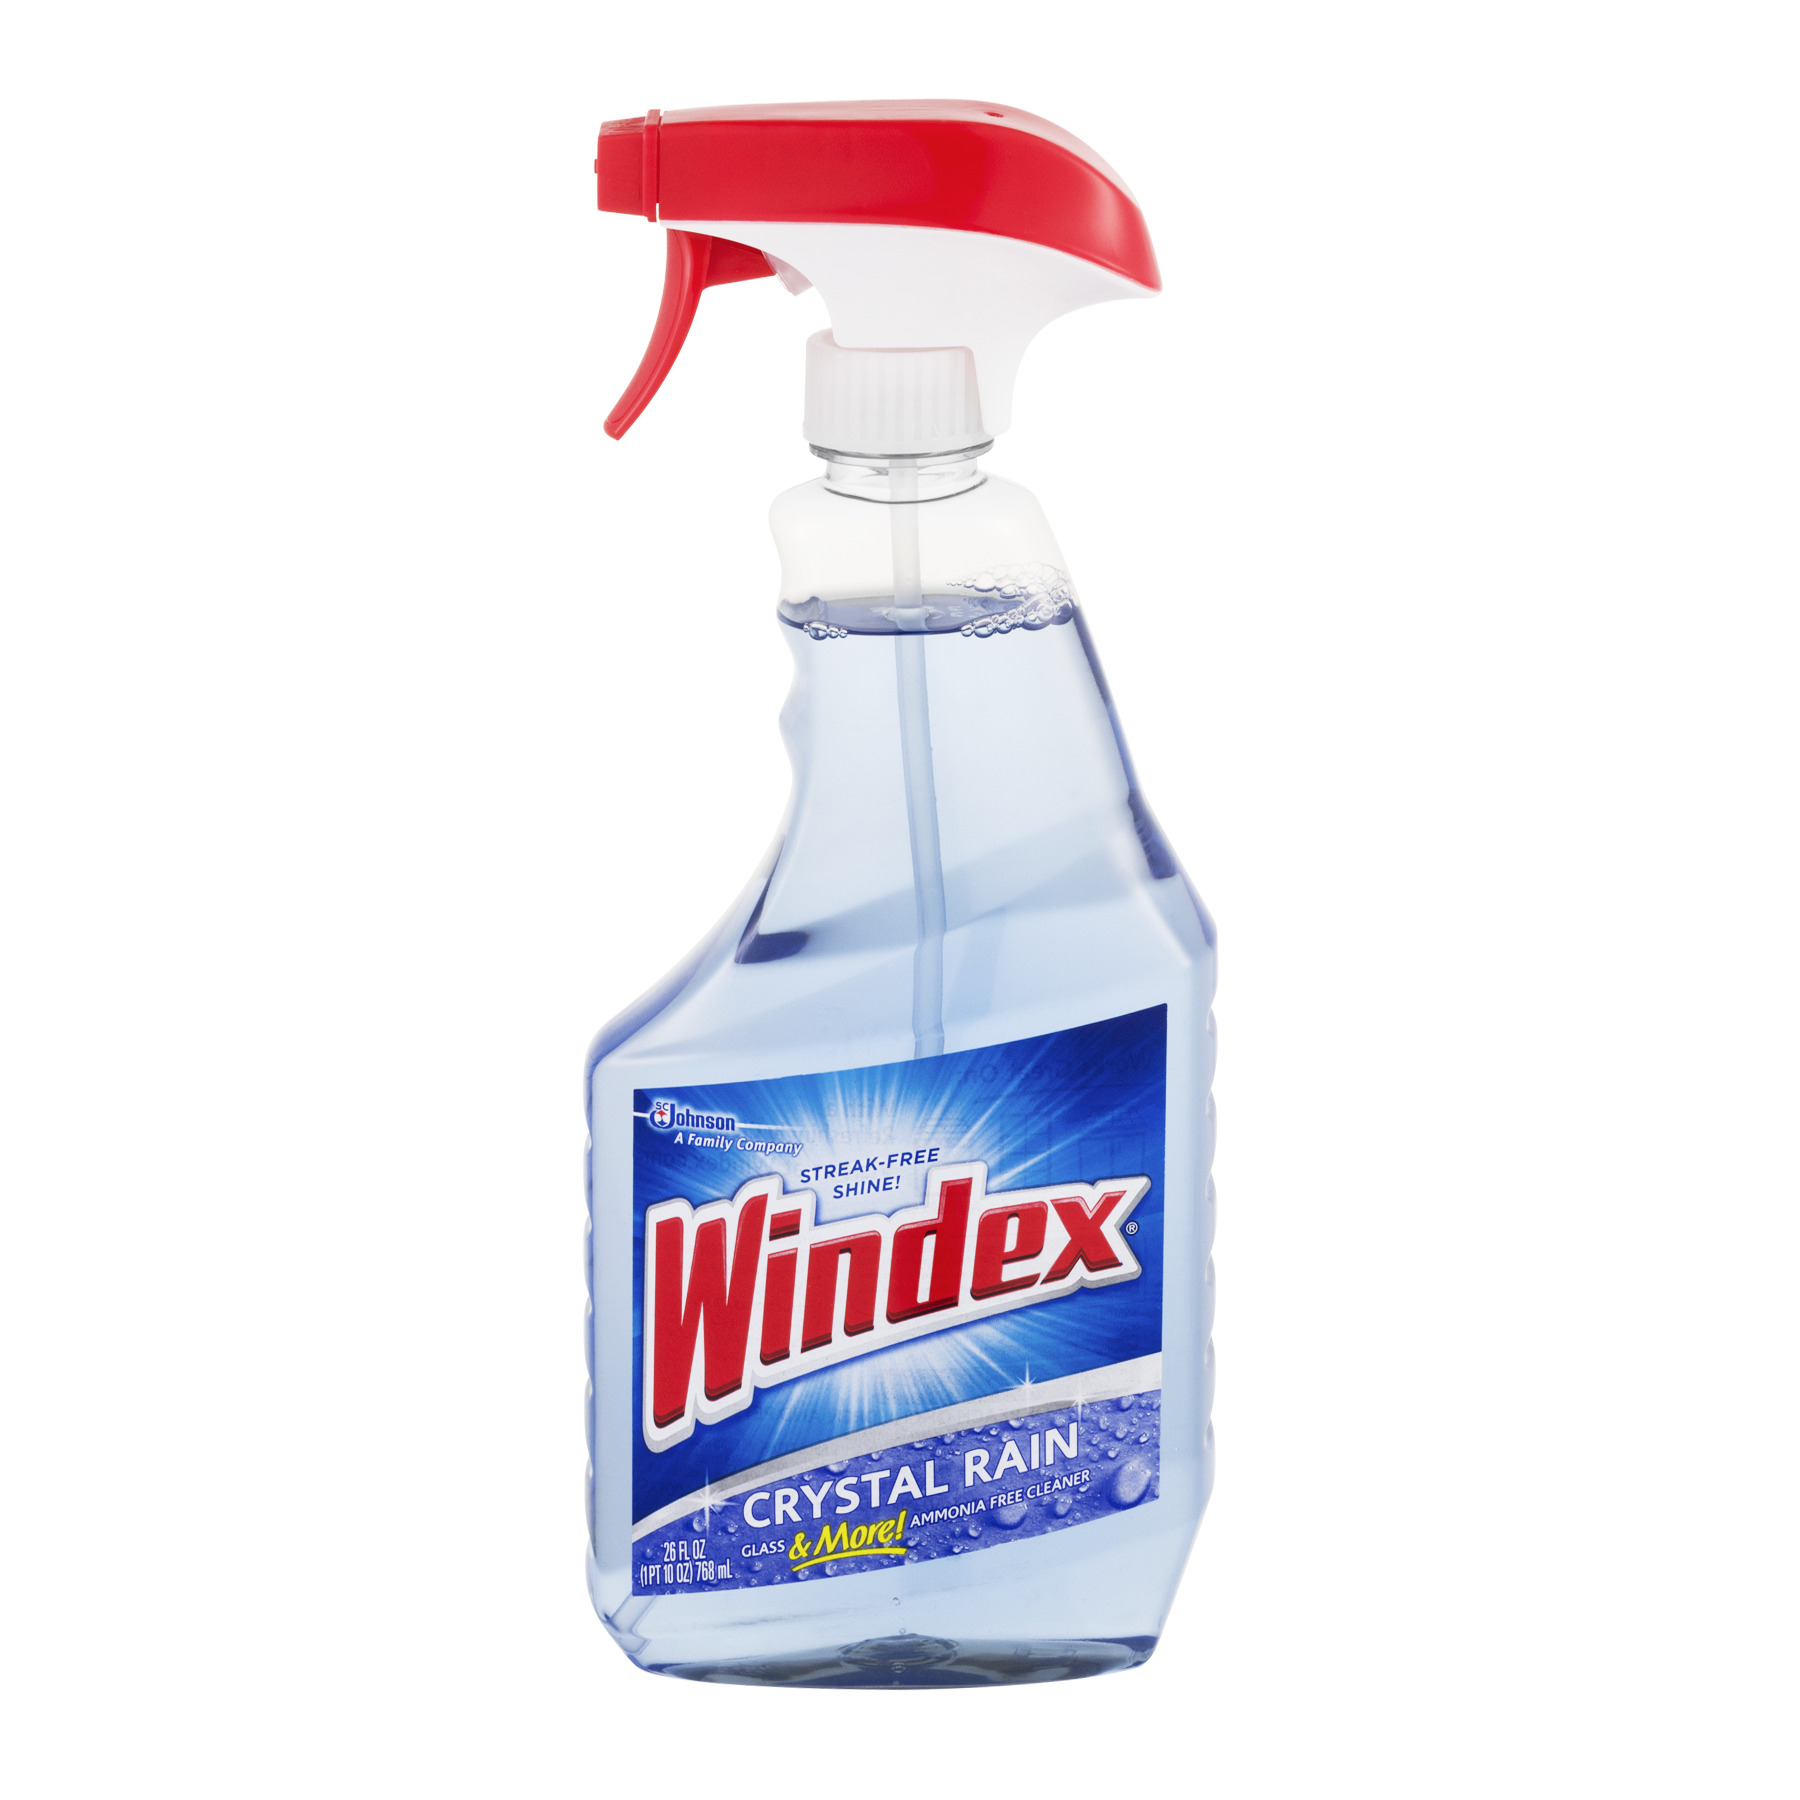 Windex Crystal Rain Glass Cleaner 26 Ounces Walmart